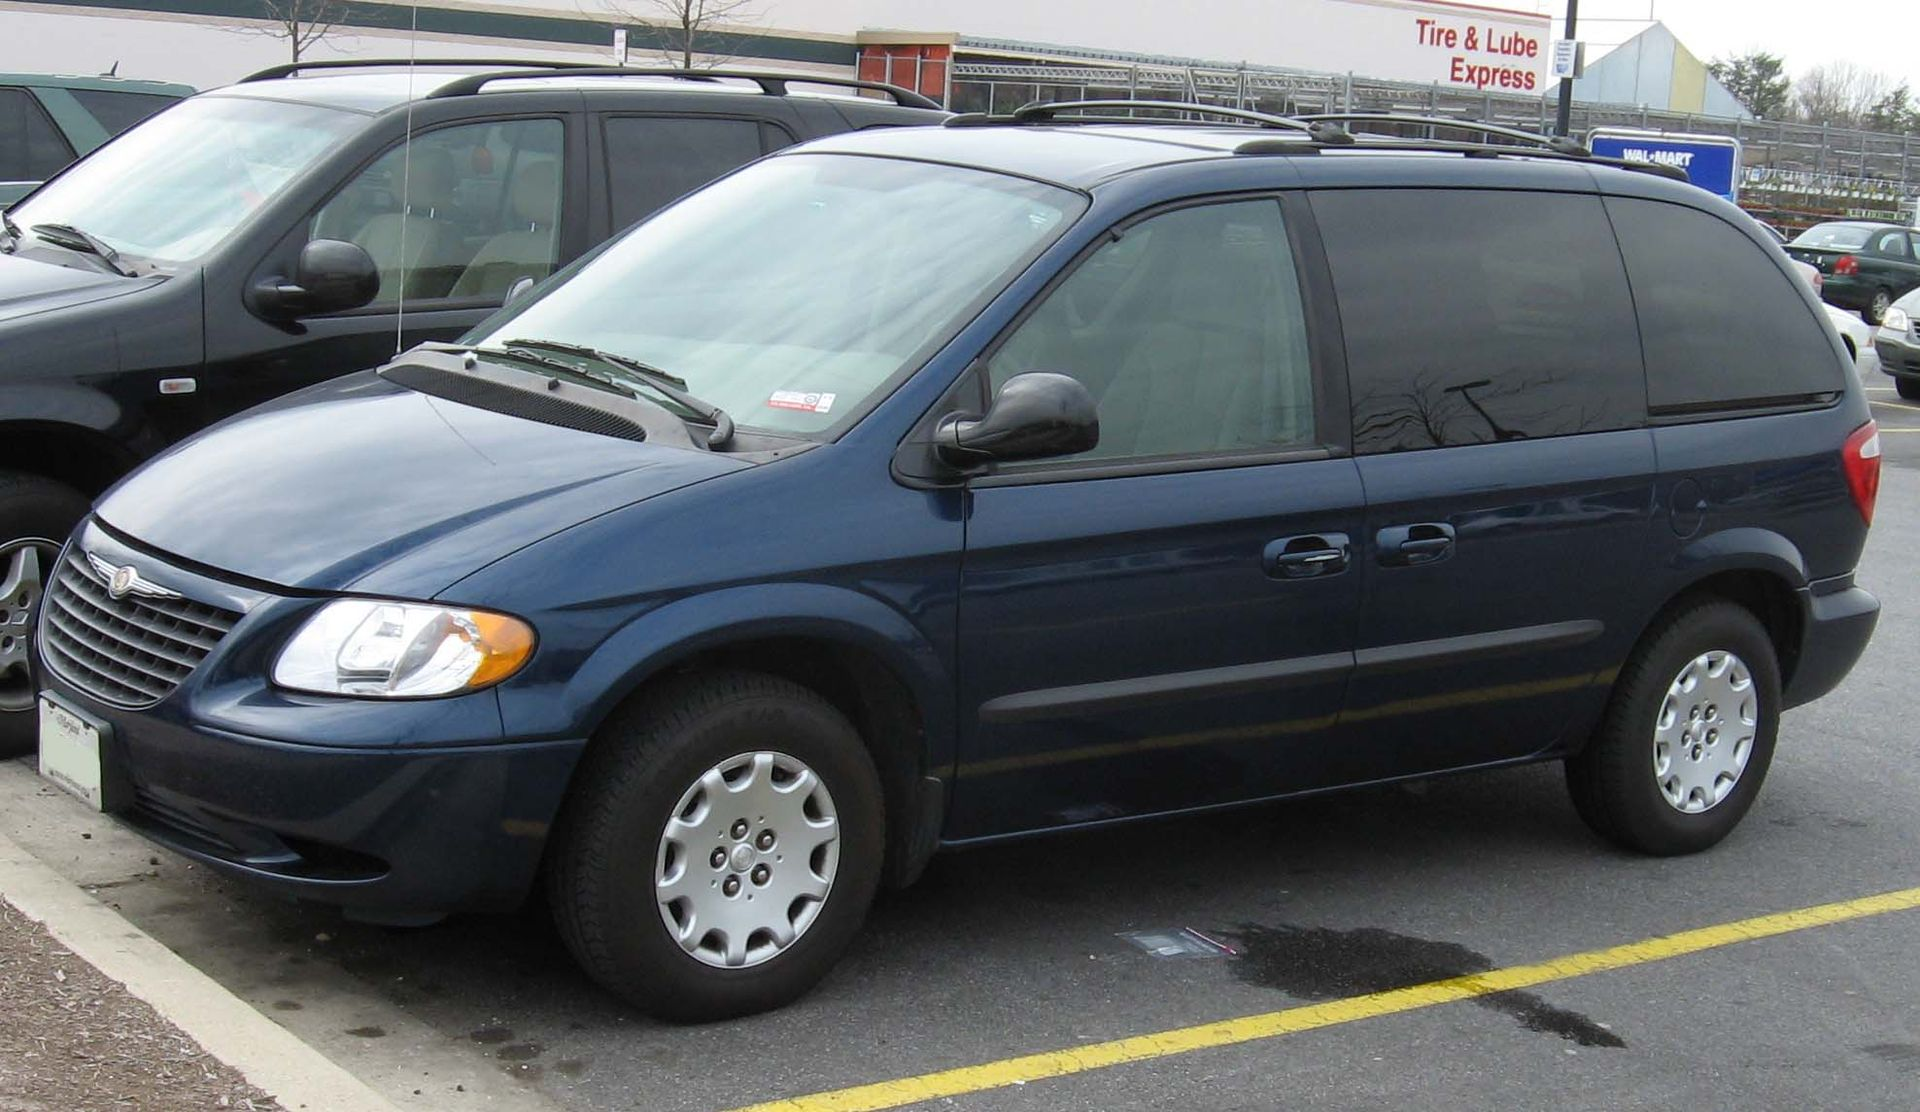 2001 03 chrysler voyager advertisements posted on 18 february 2016 full size